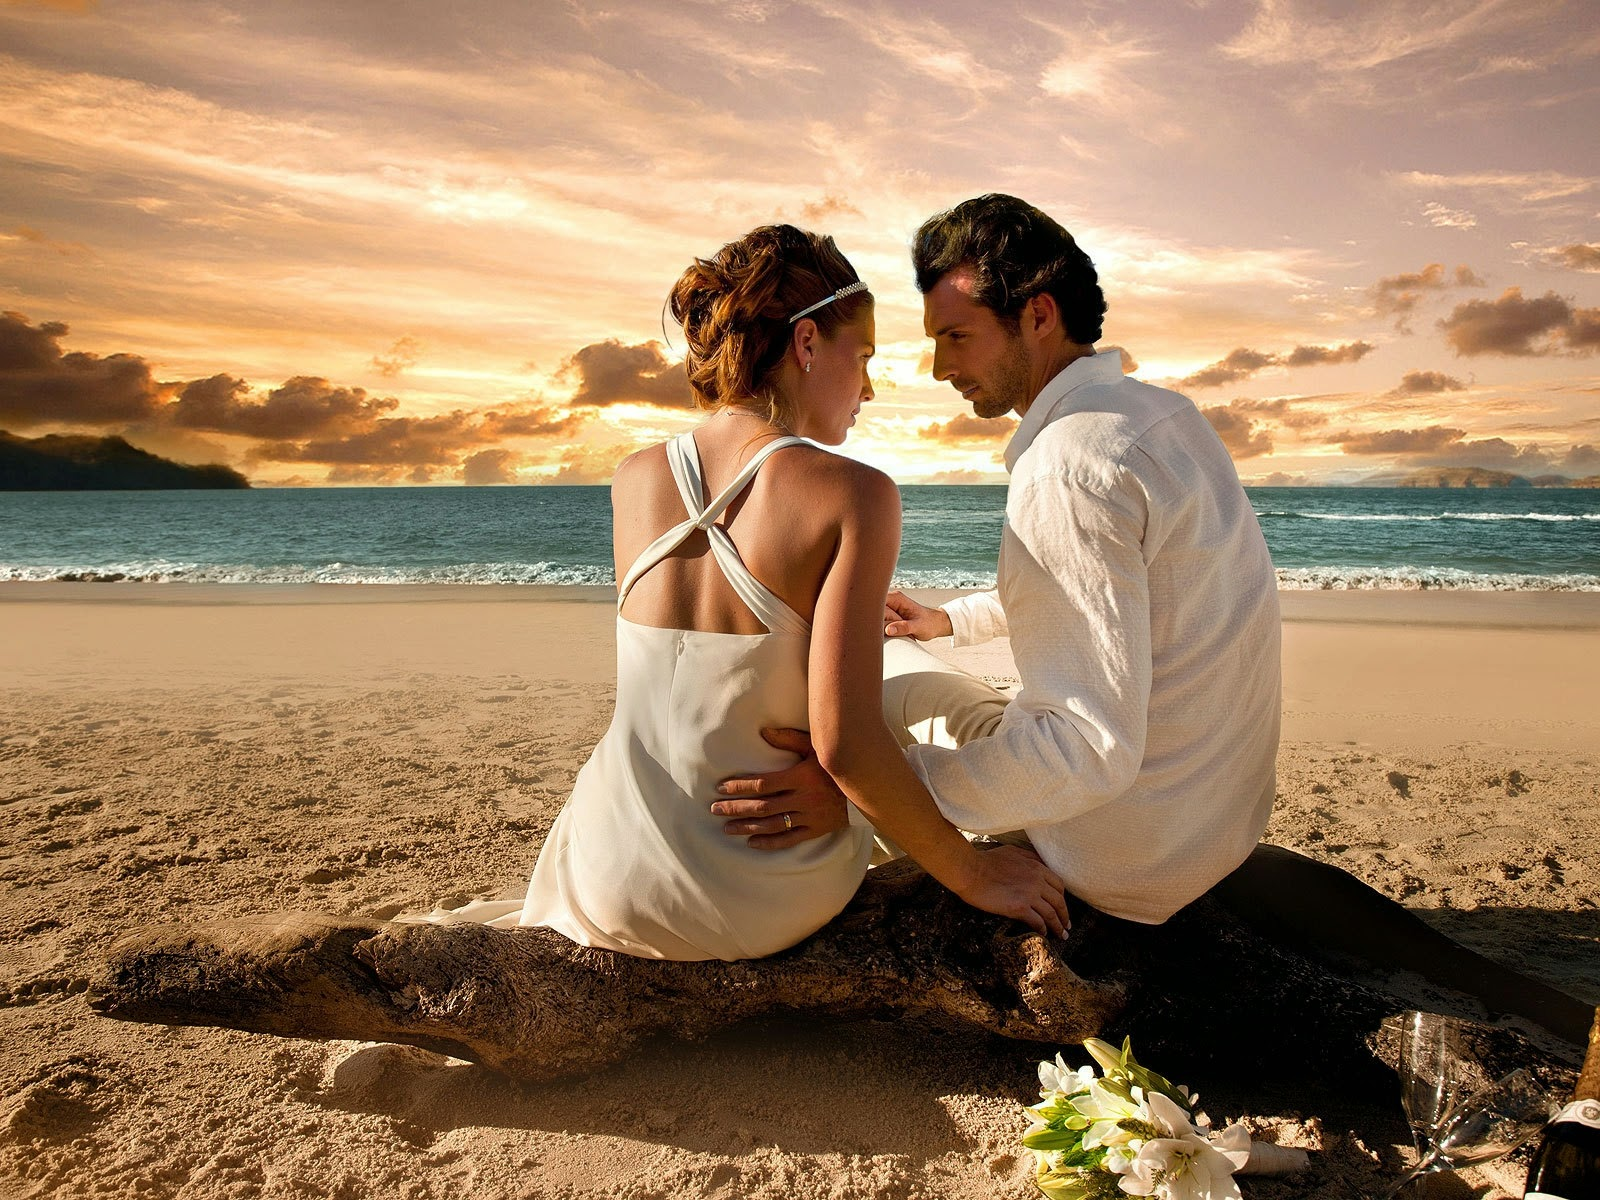 Love Wallpaper Romantic Image HD